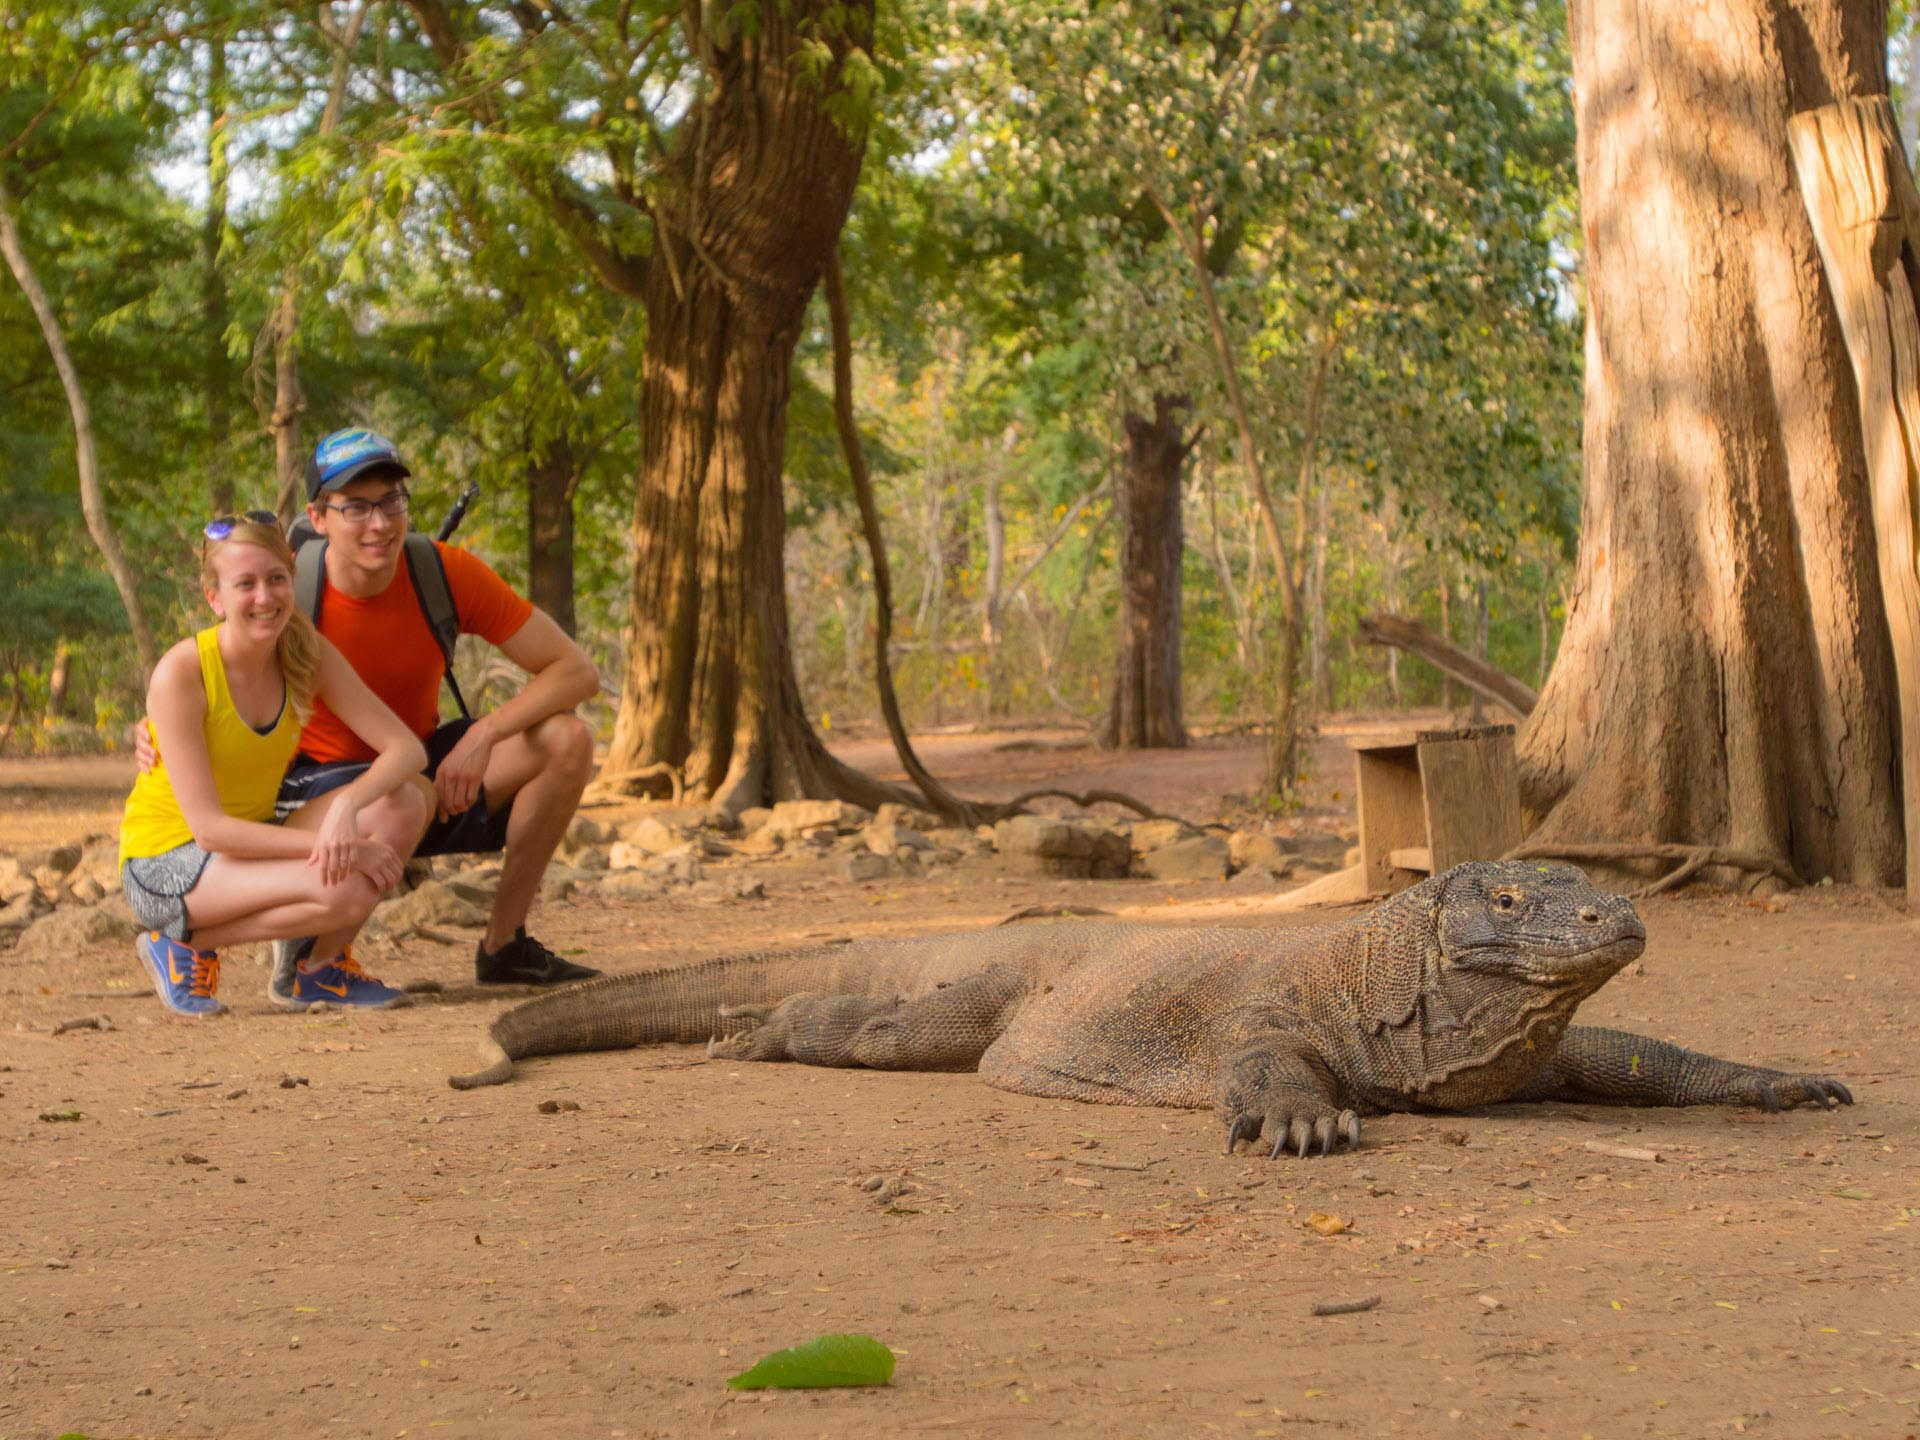 two people posing behind Komodo dragon